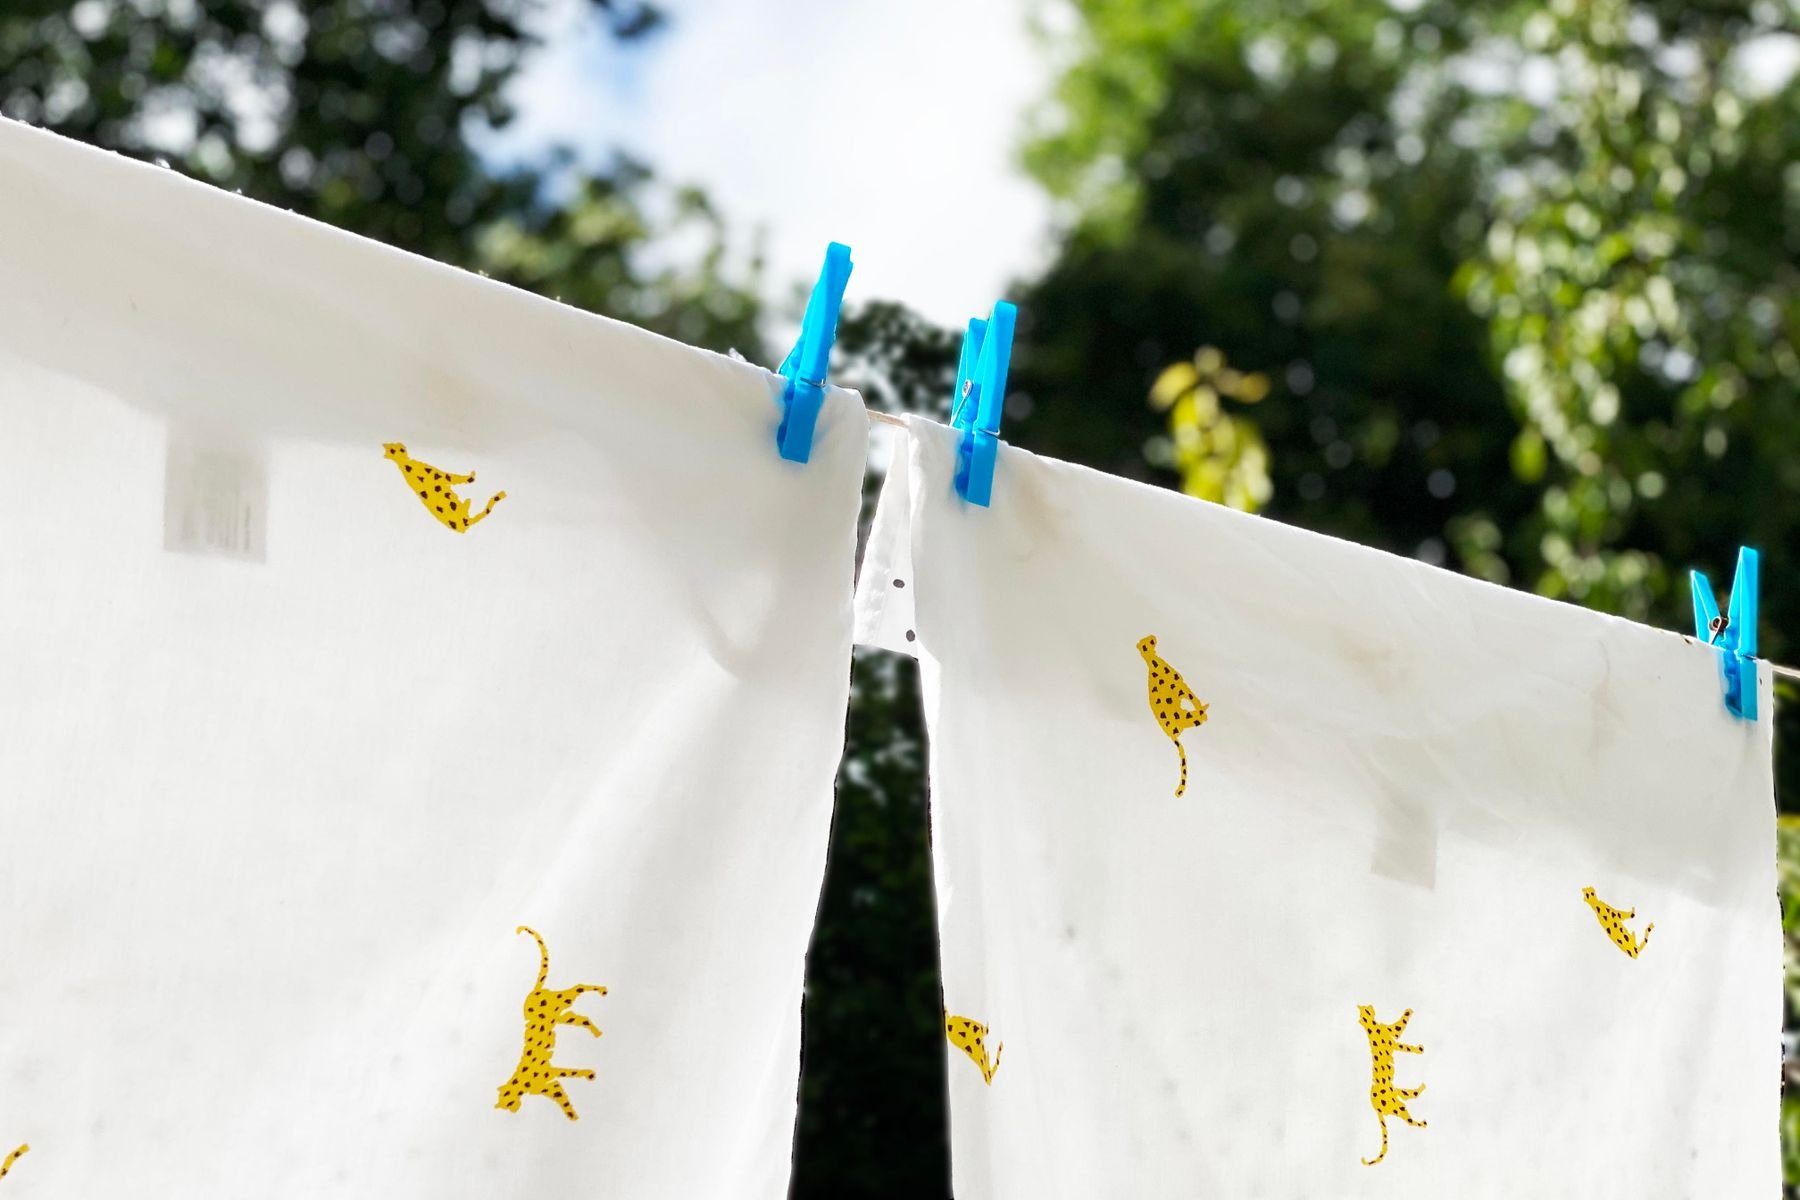 Pillow cases drying on an outdoor washing line